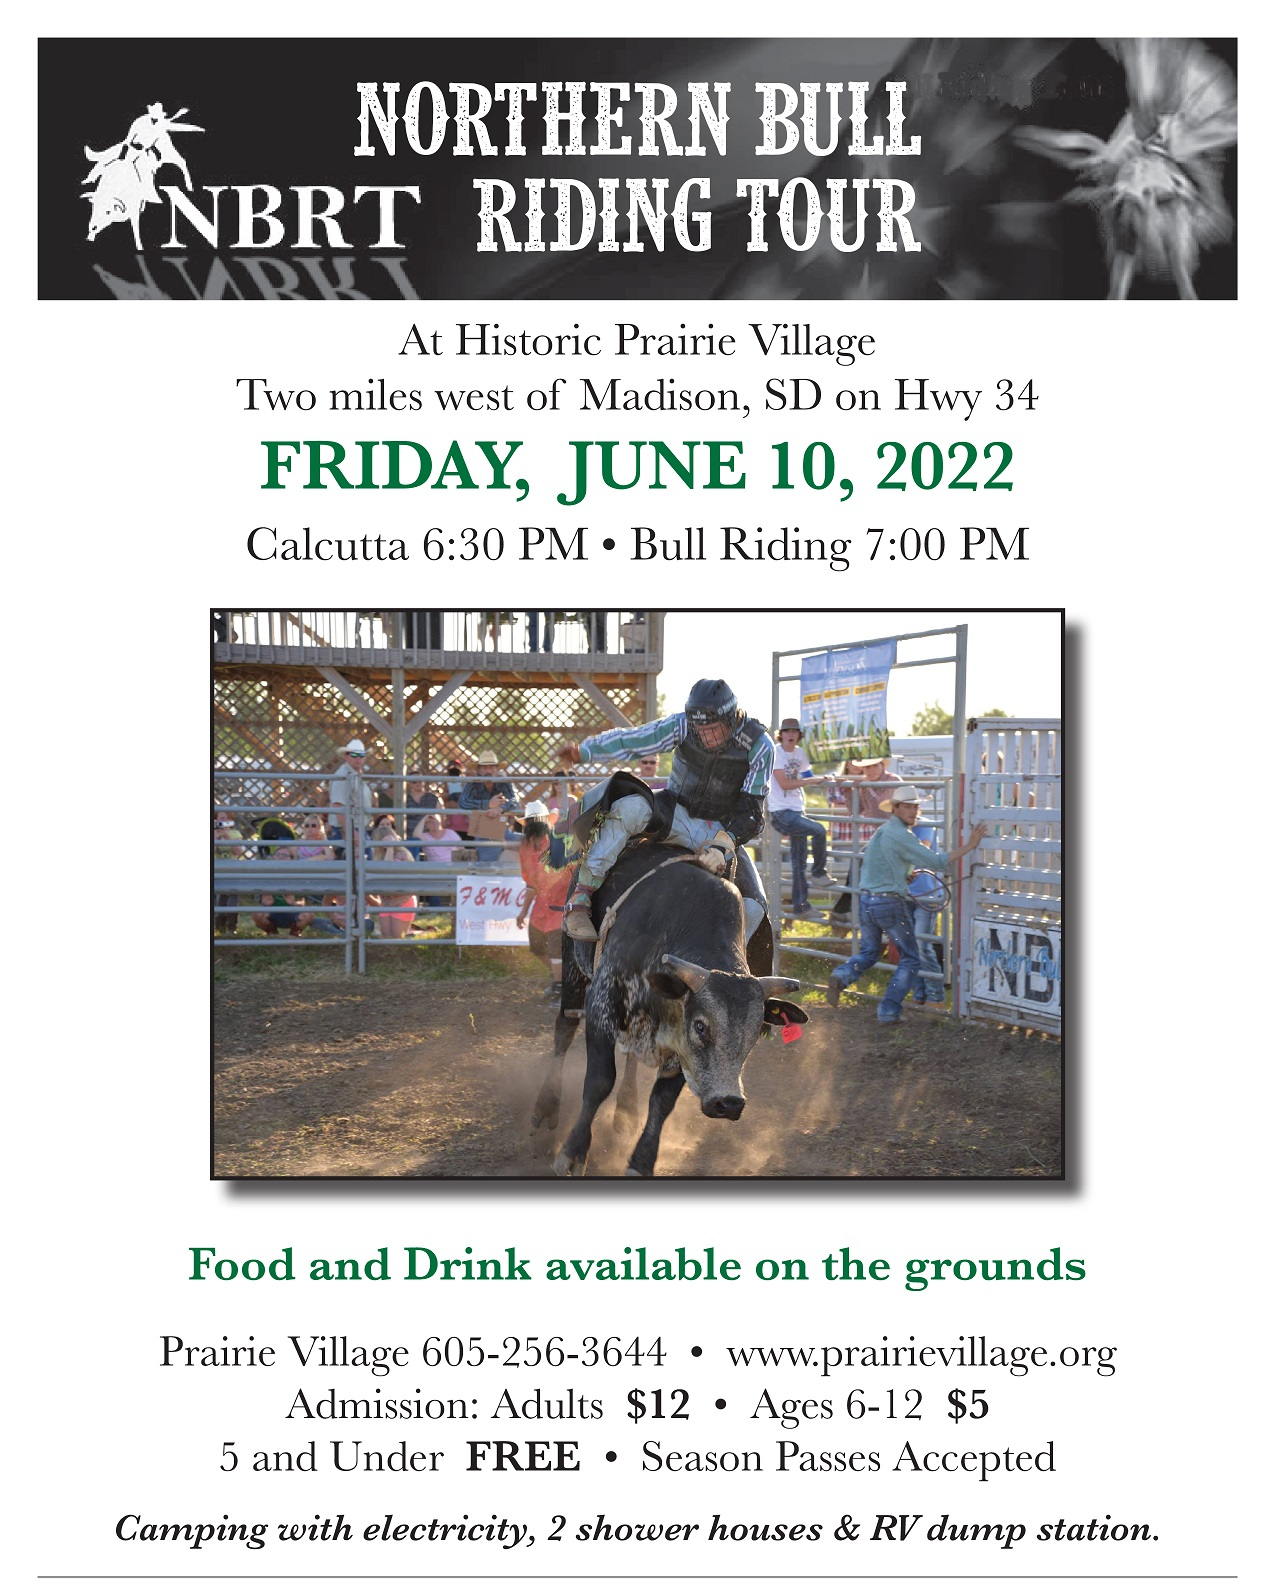 Northern Bull Riding Tour